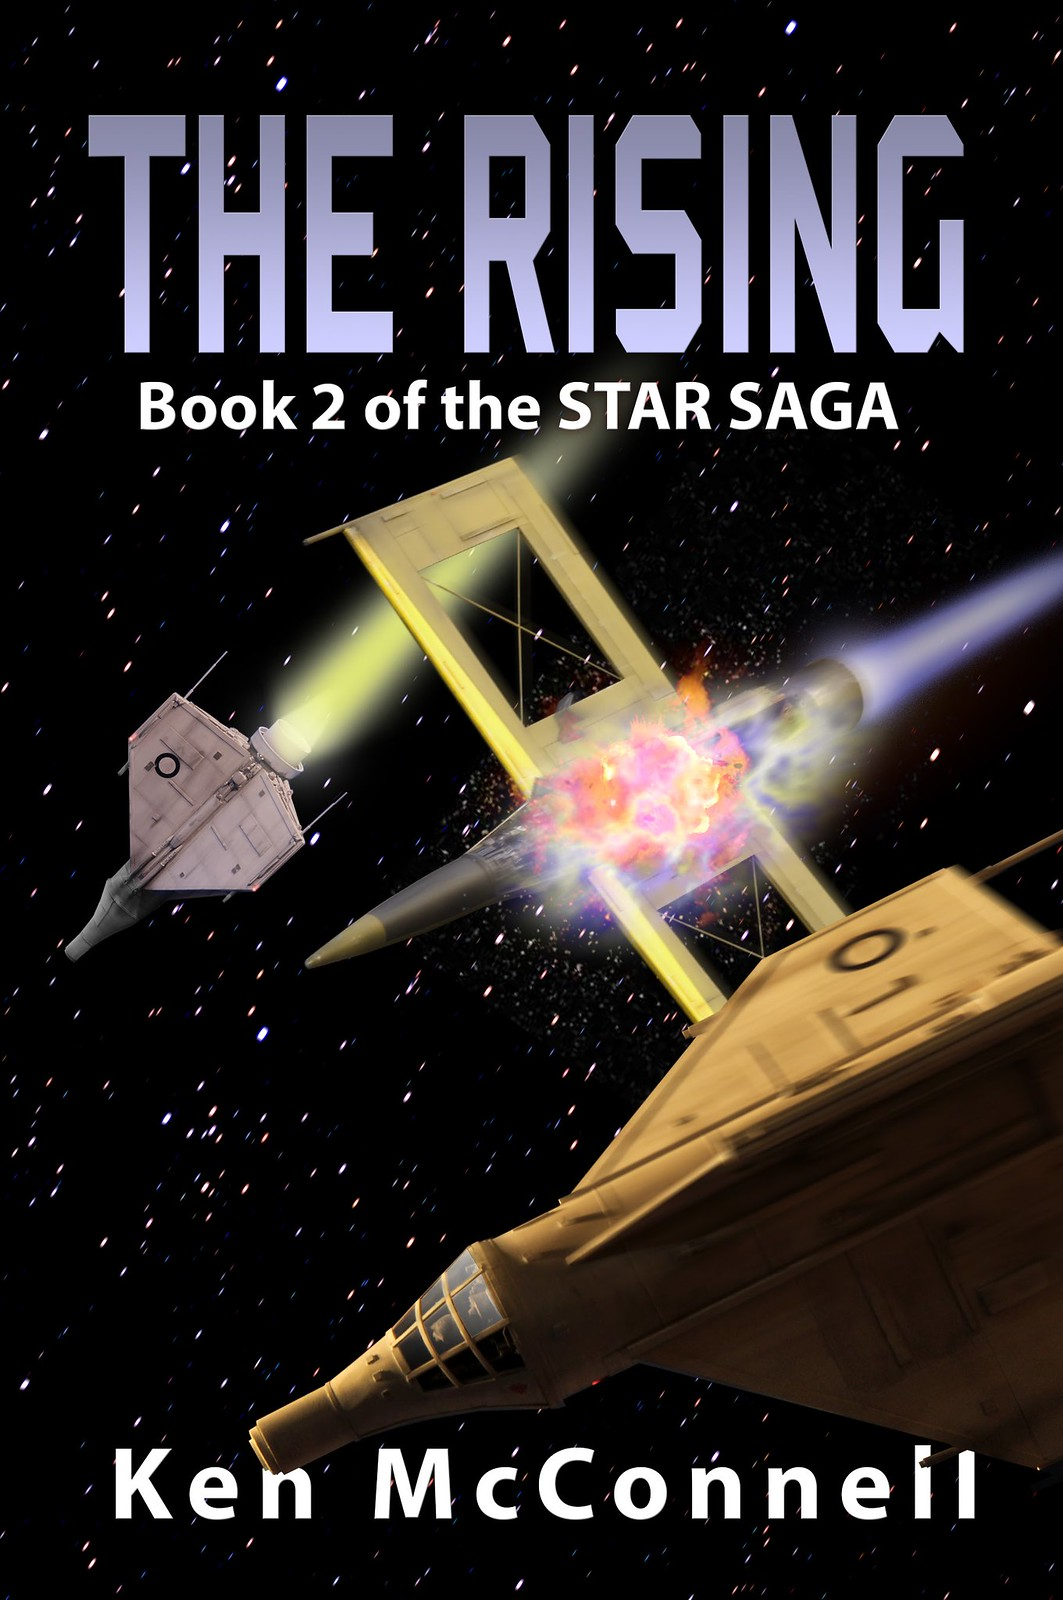 The Rising Cover 2-7-16